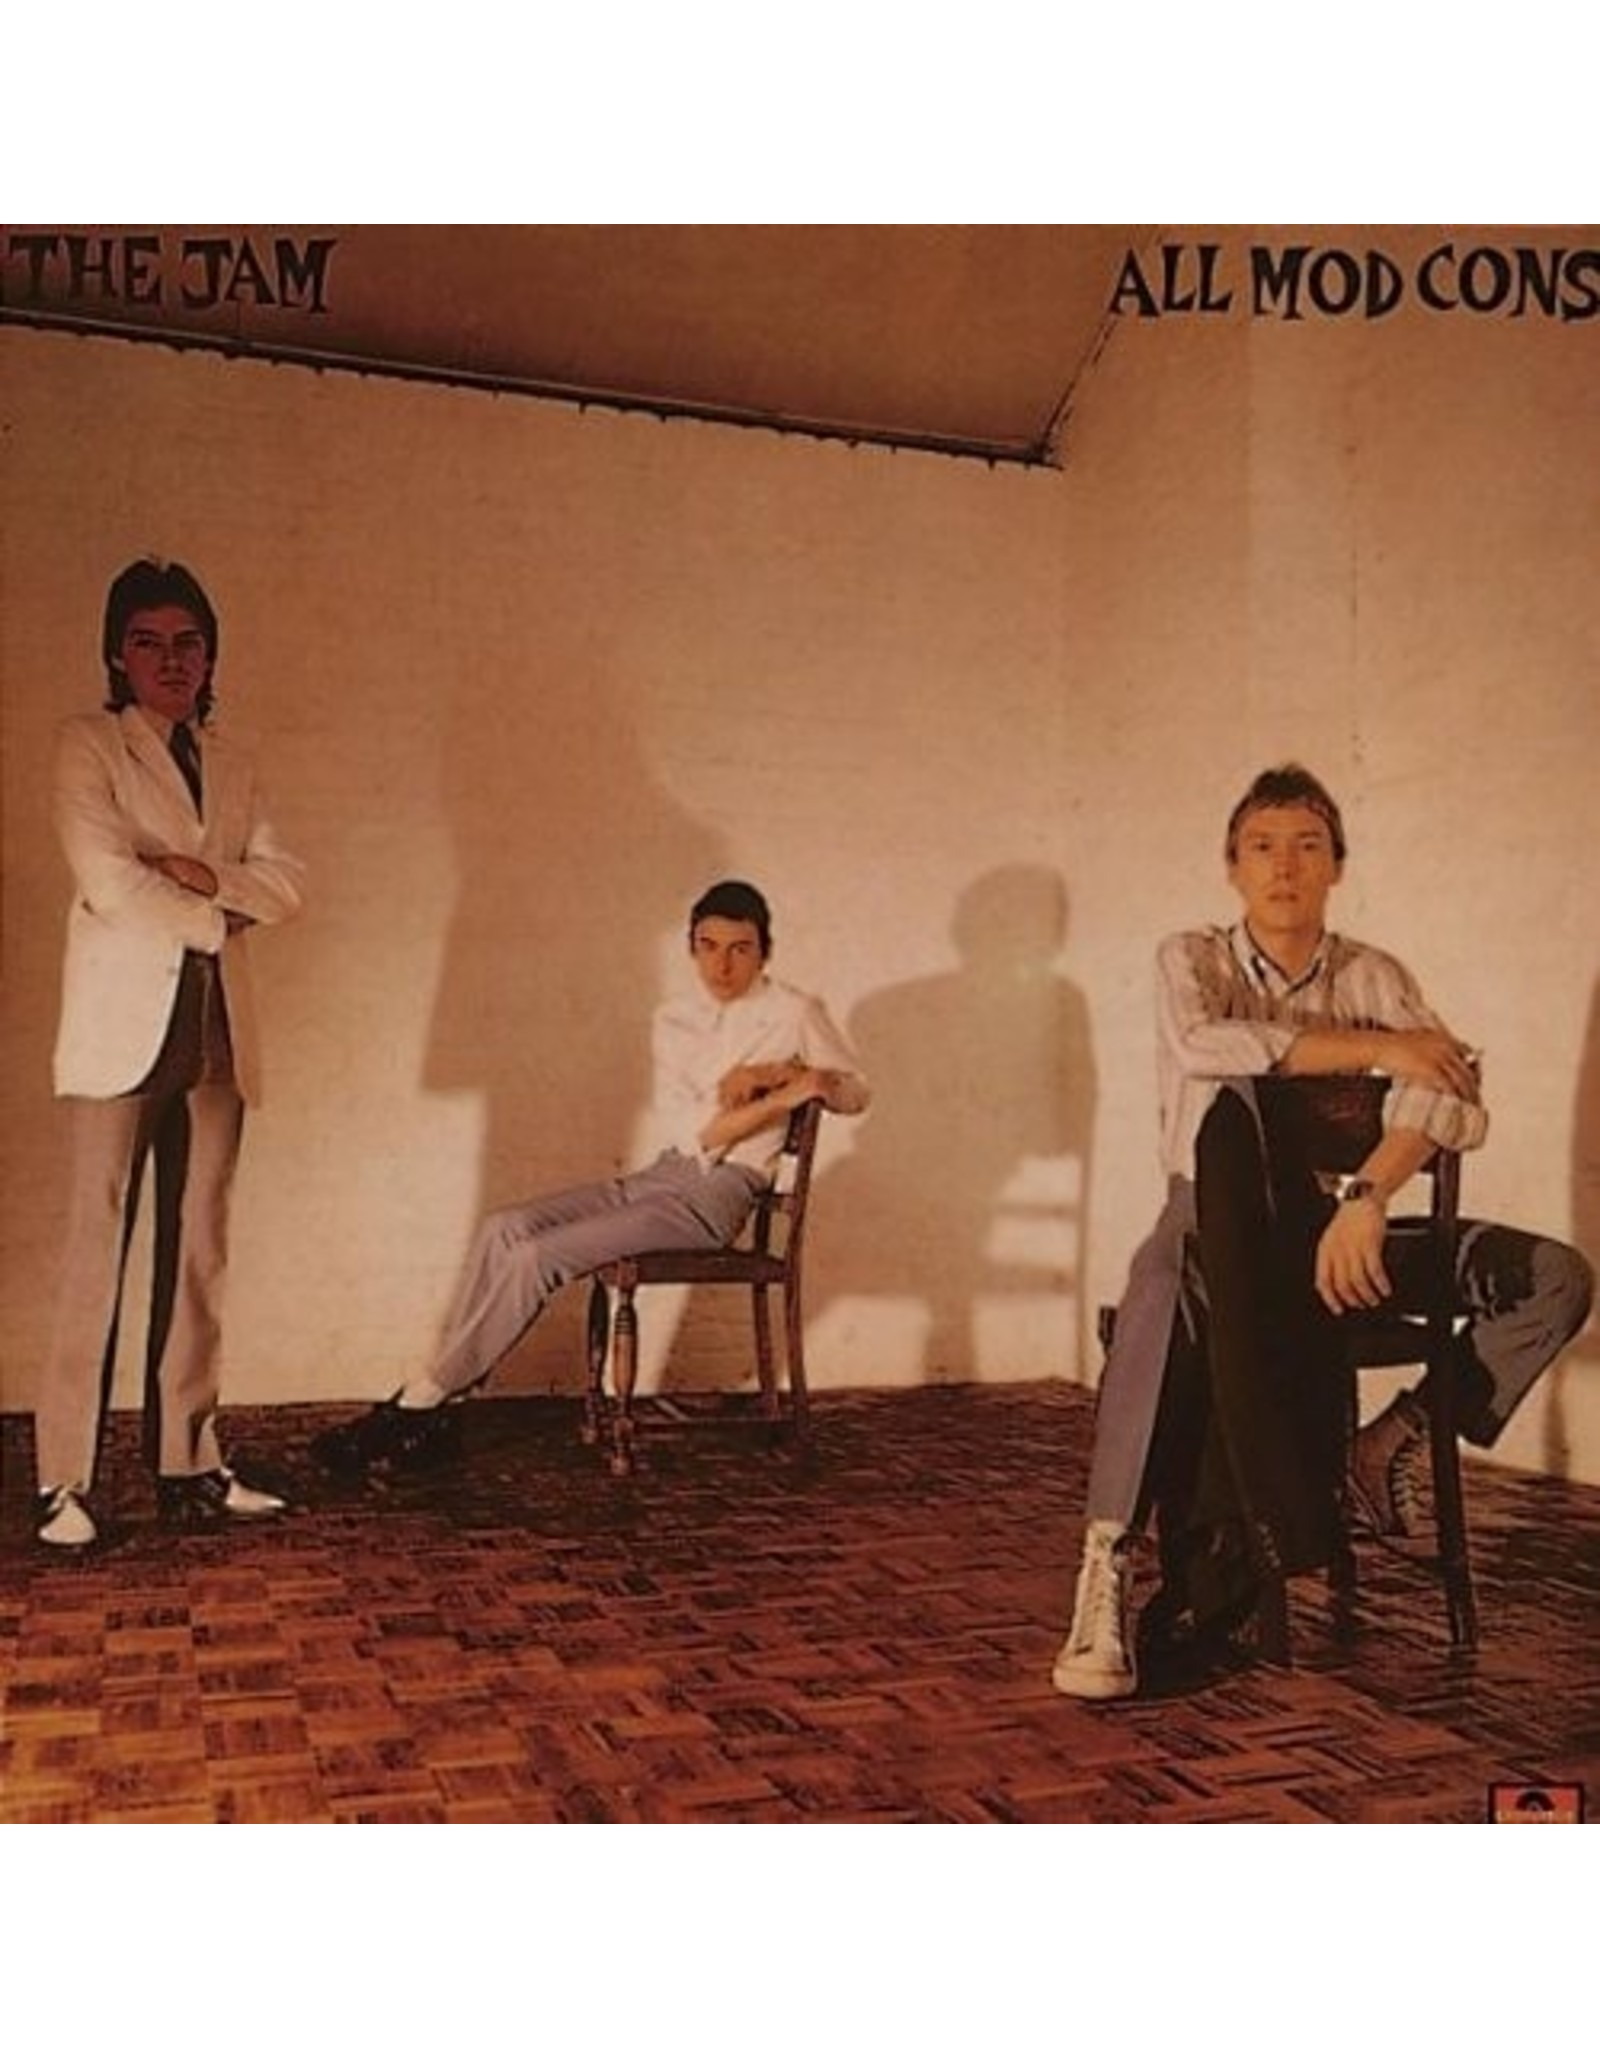 New Vinyl The Jam - All Mod Cons LP